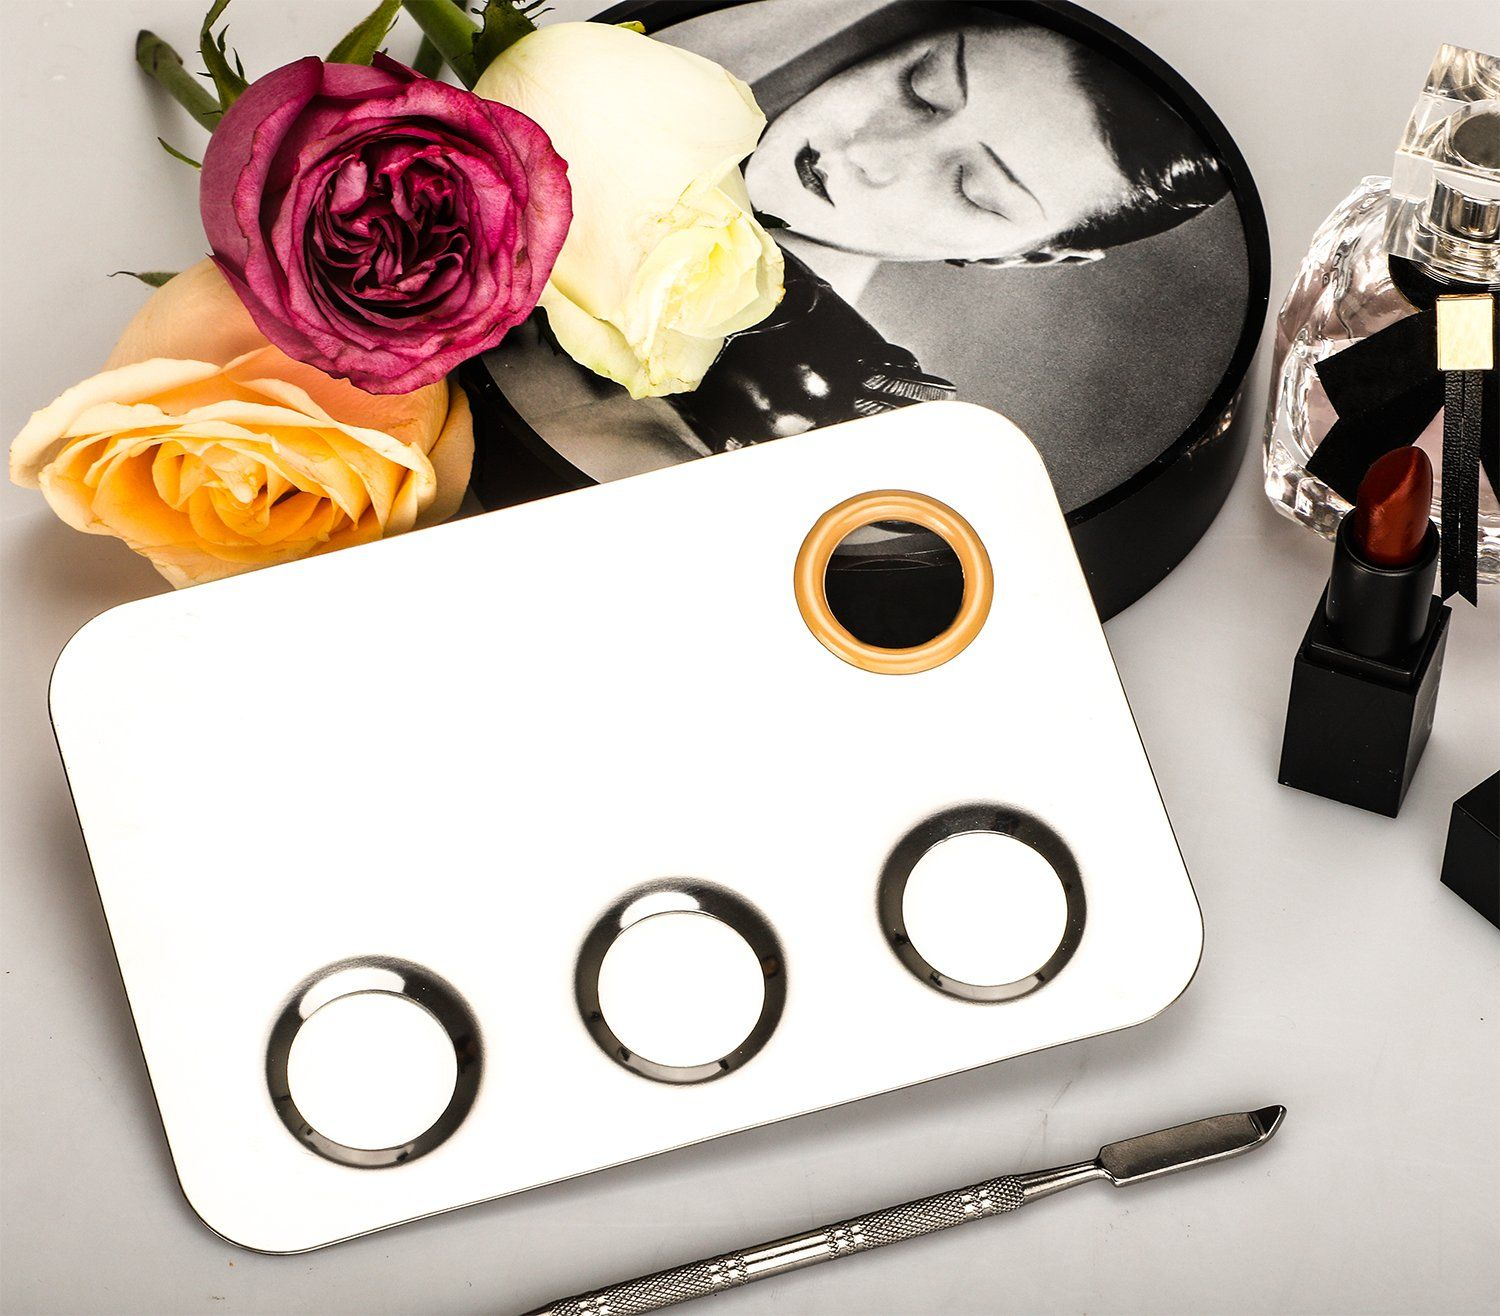 PrettyDate Makeup Palette 6x4inch Stainless Steel 3well